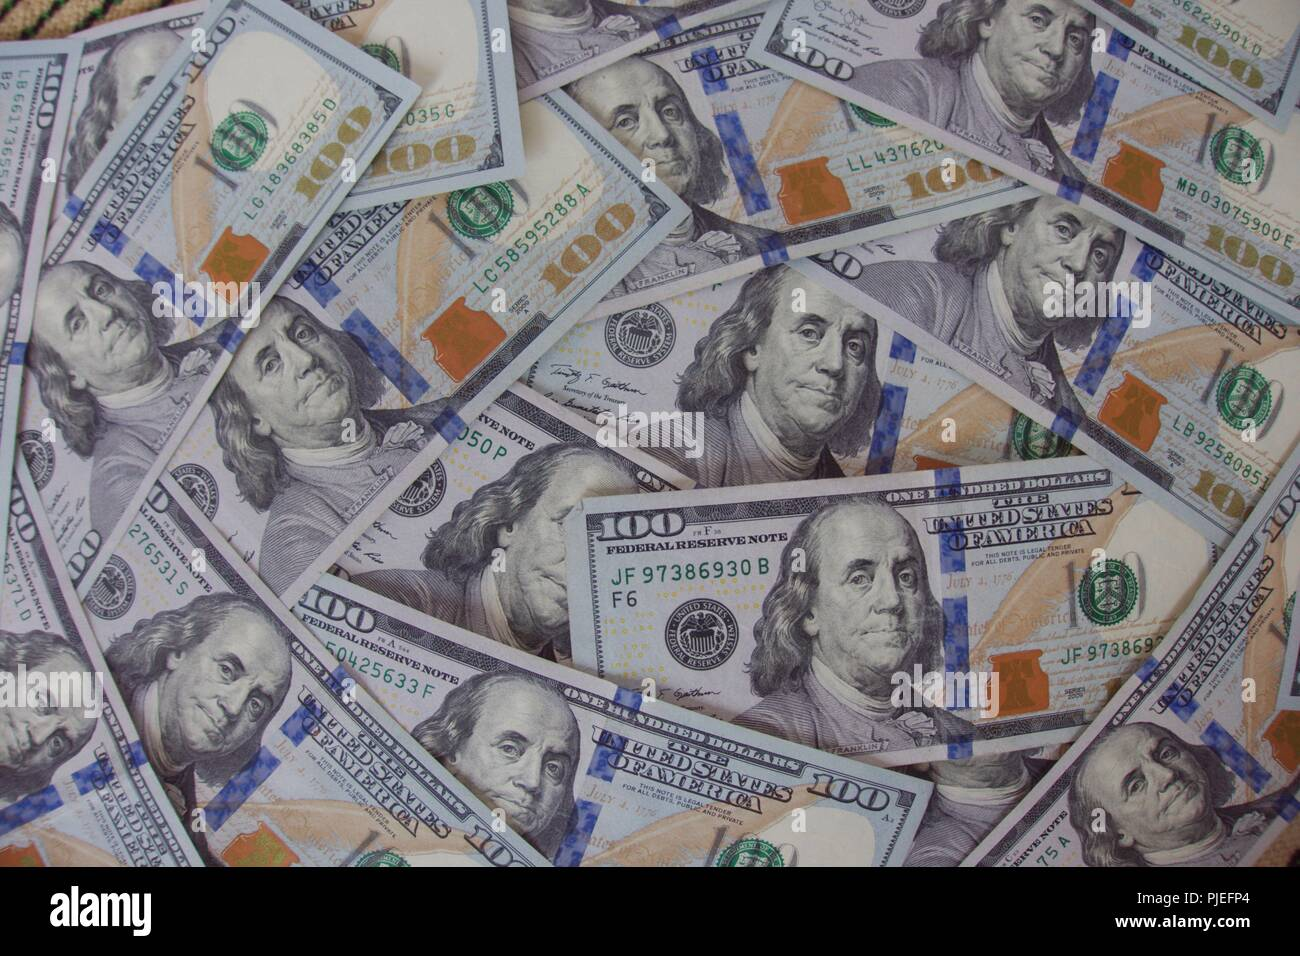 $100 bills US currency with the face of Benjamin Franklin, a very famous American but who was not a president like the faces on other US currency denominations. - Stock Image